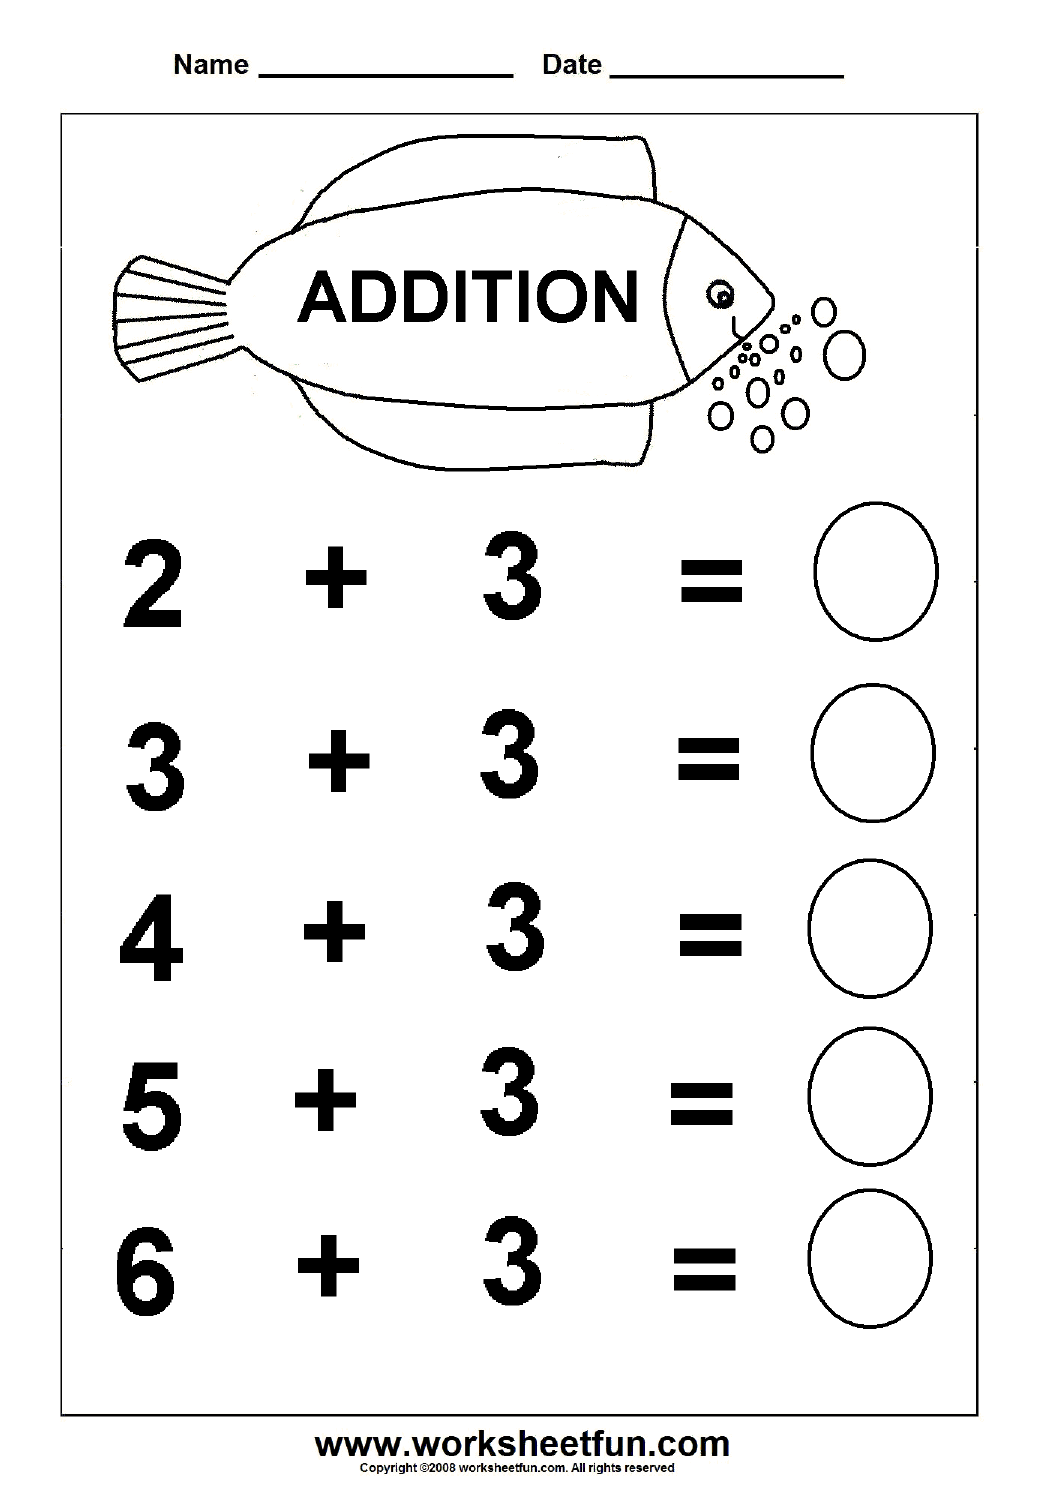 Collection Of Free Easy Addition Worksheets For Kindergarten